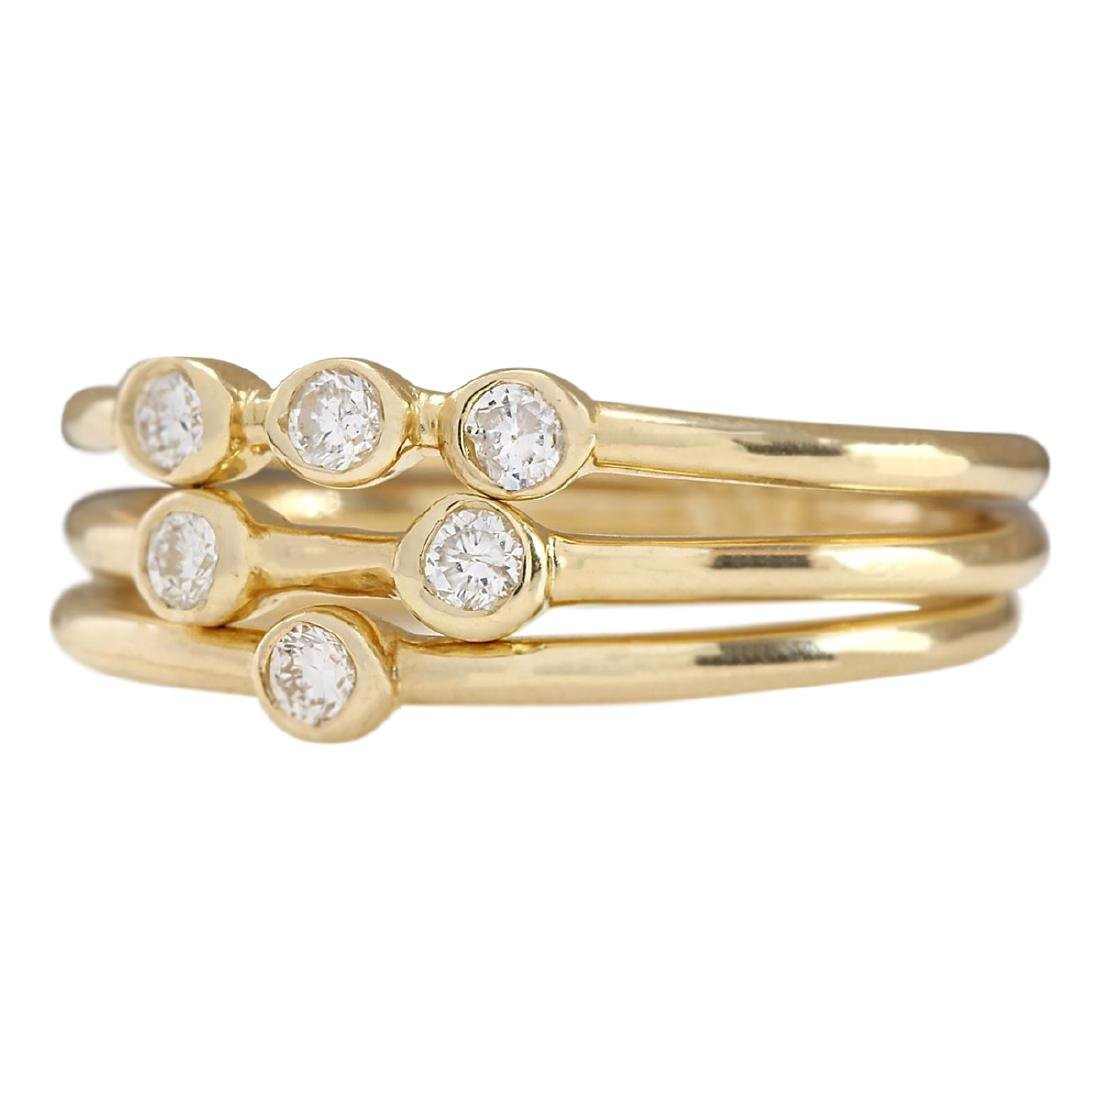 .24 CTW Diamond Ring In 18K Solid Yellow Gold - 2